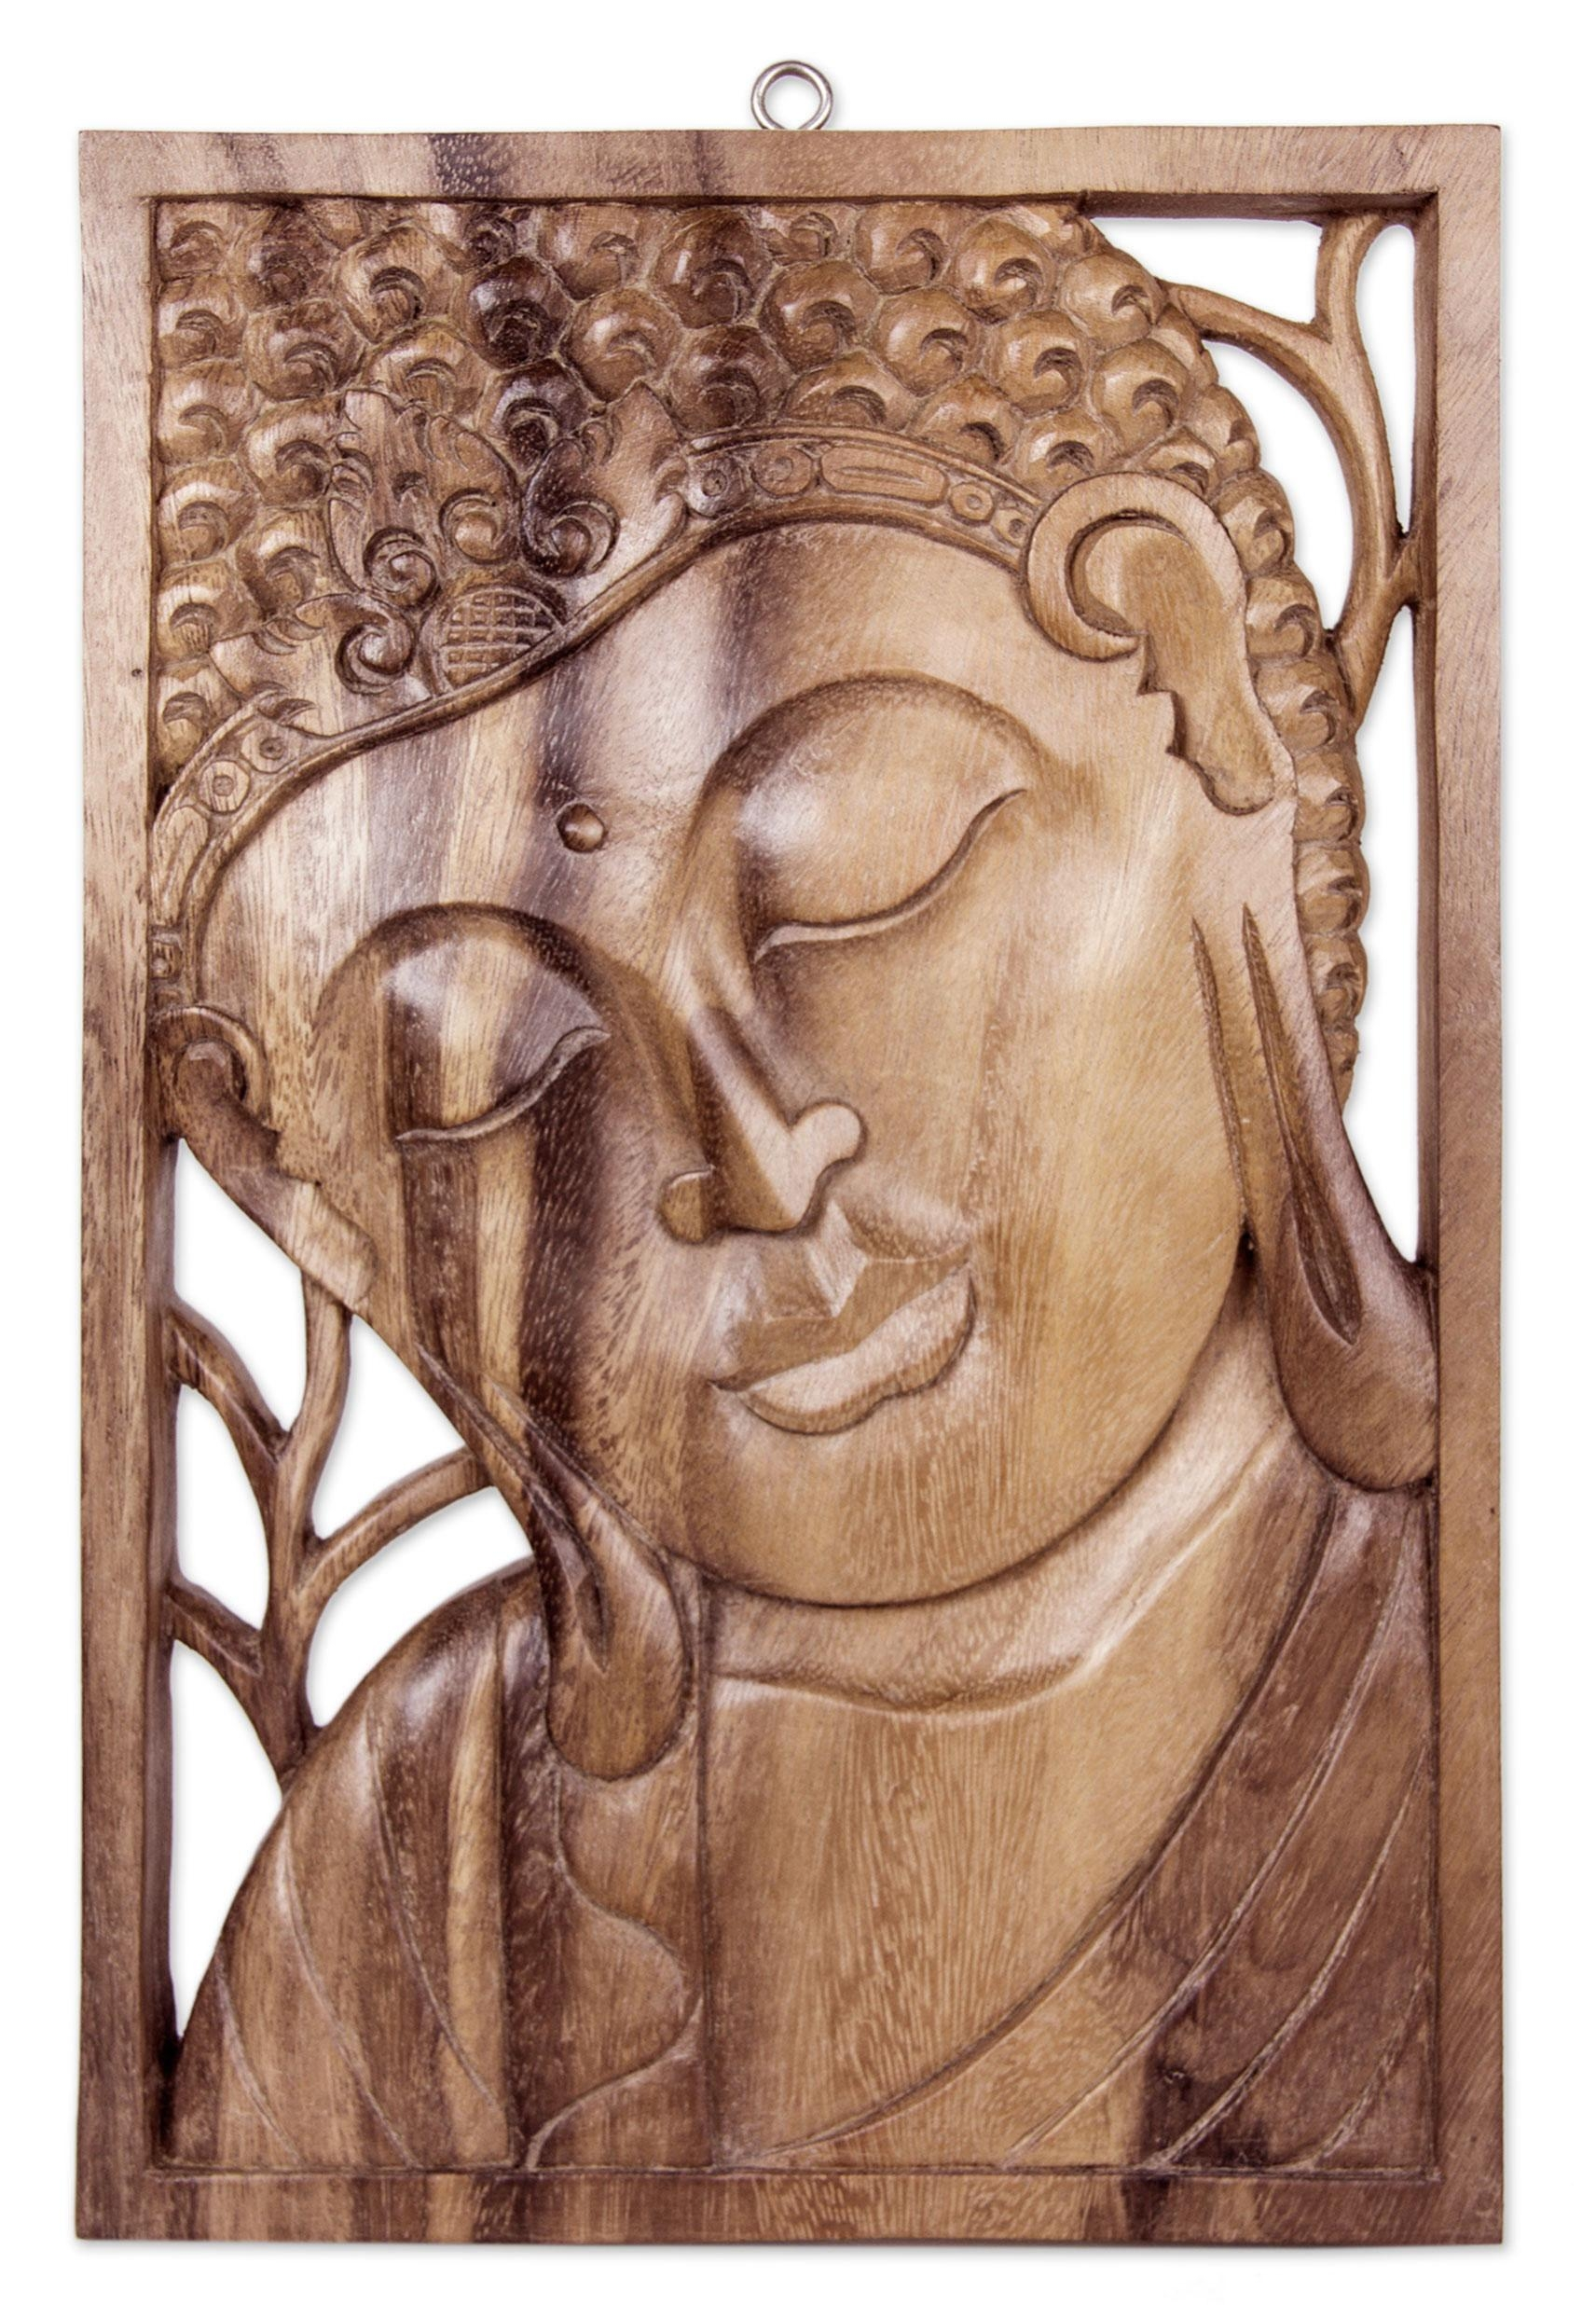 Zen Home Decor Ideas – Buddha Decor And Art | Novica Intended For Balinese Wall Art (View 14 of 20)